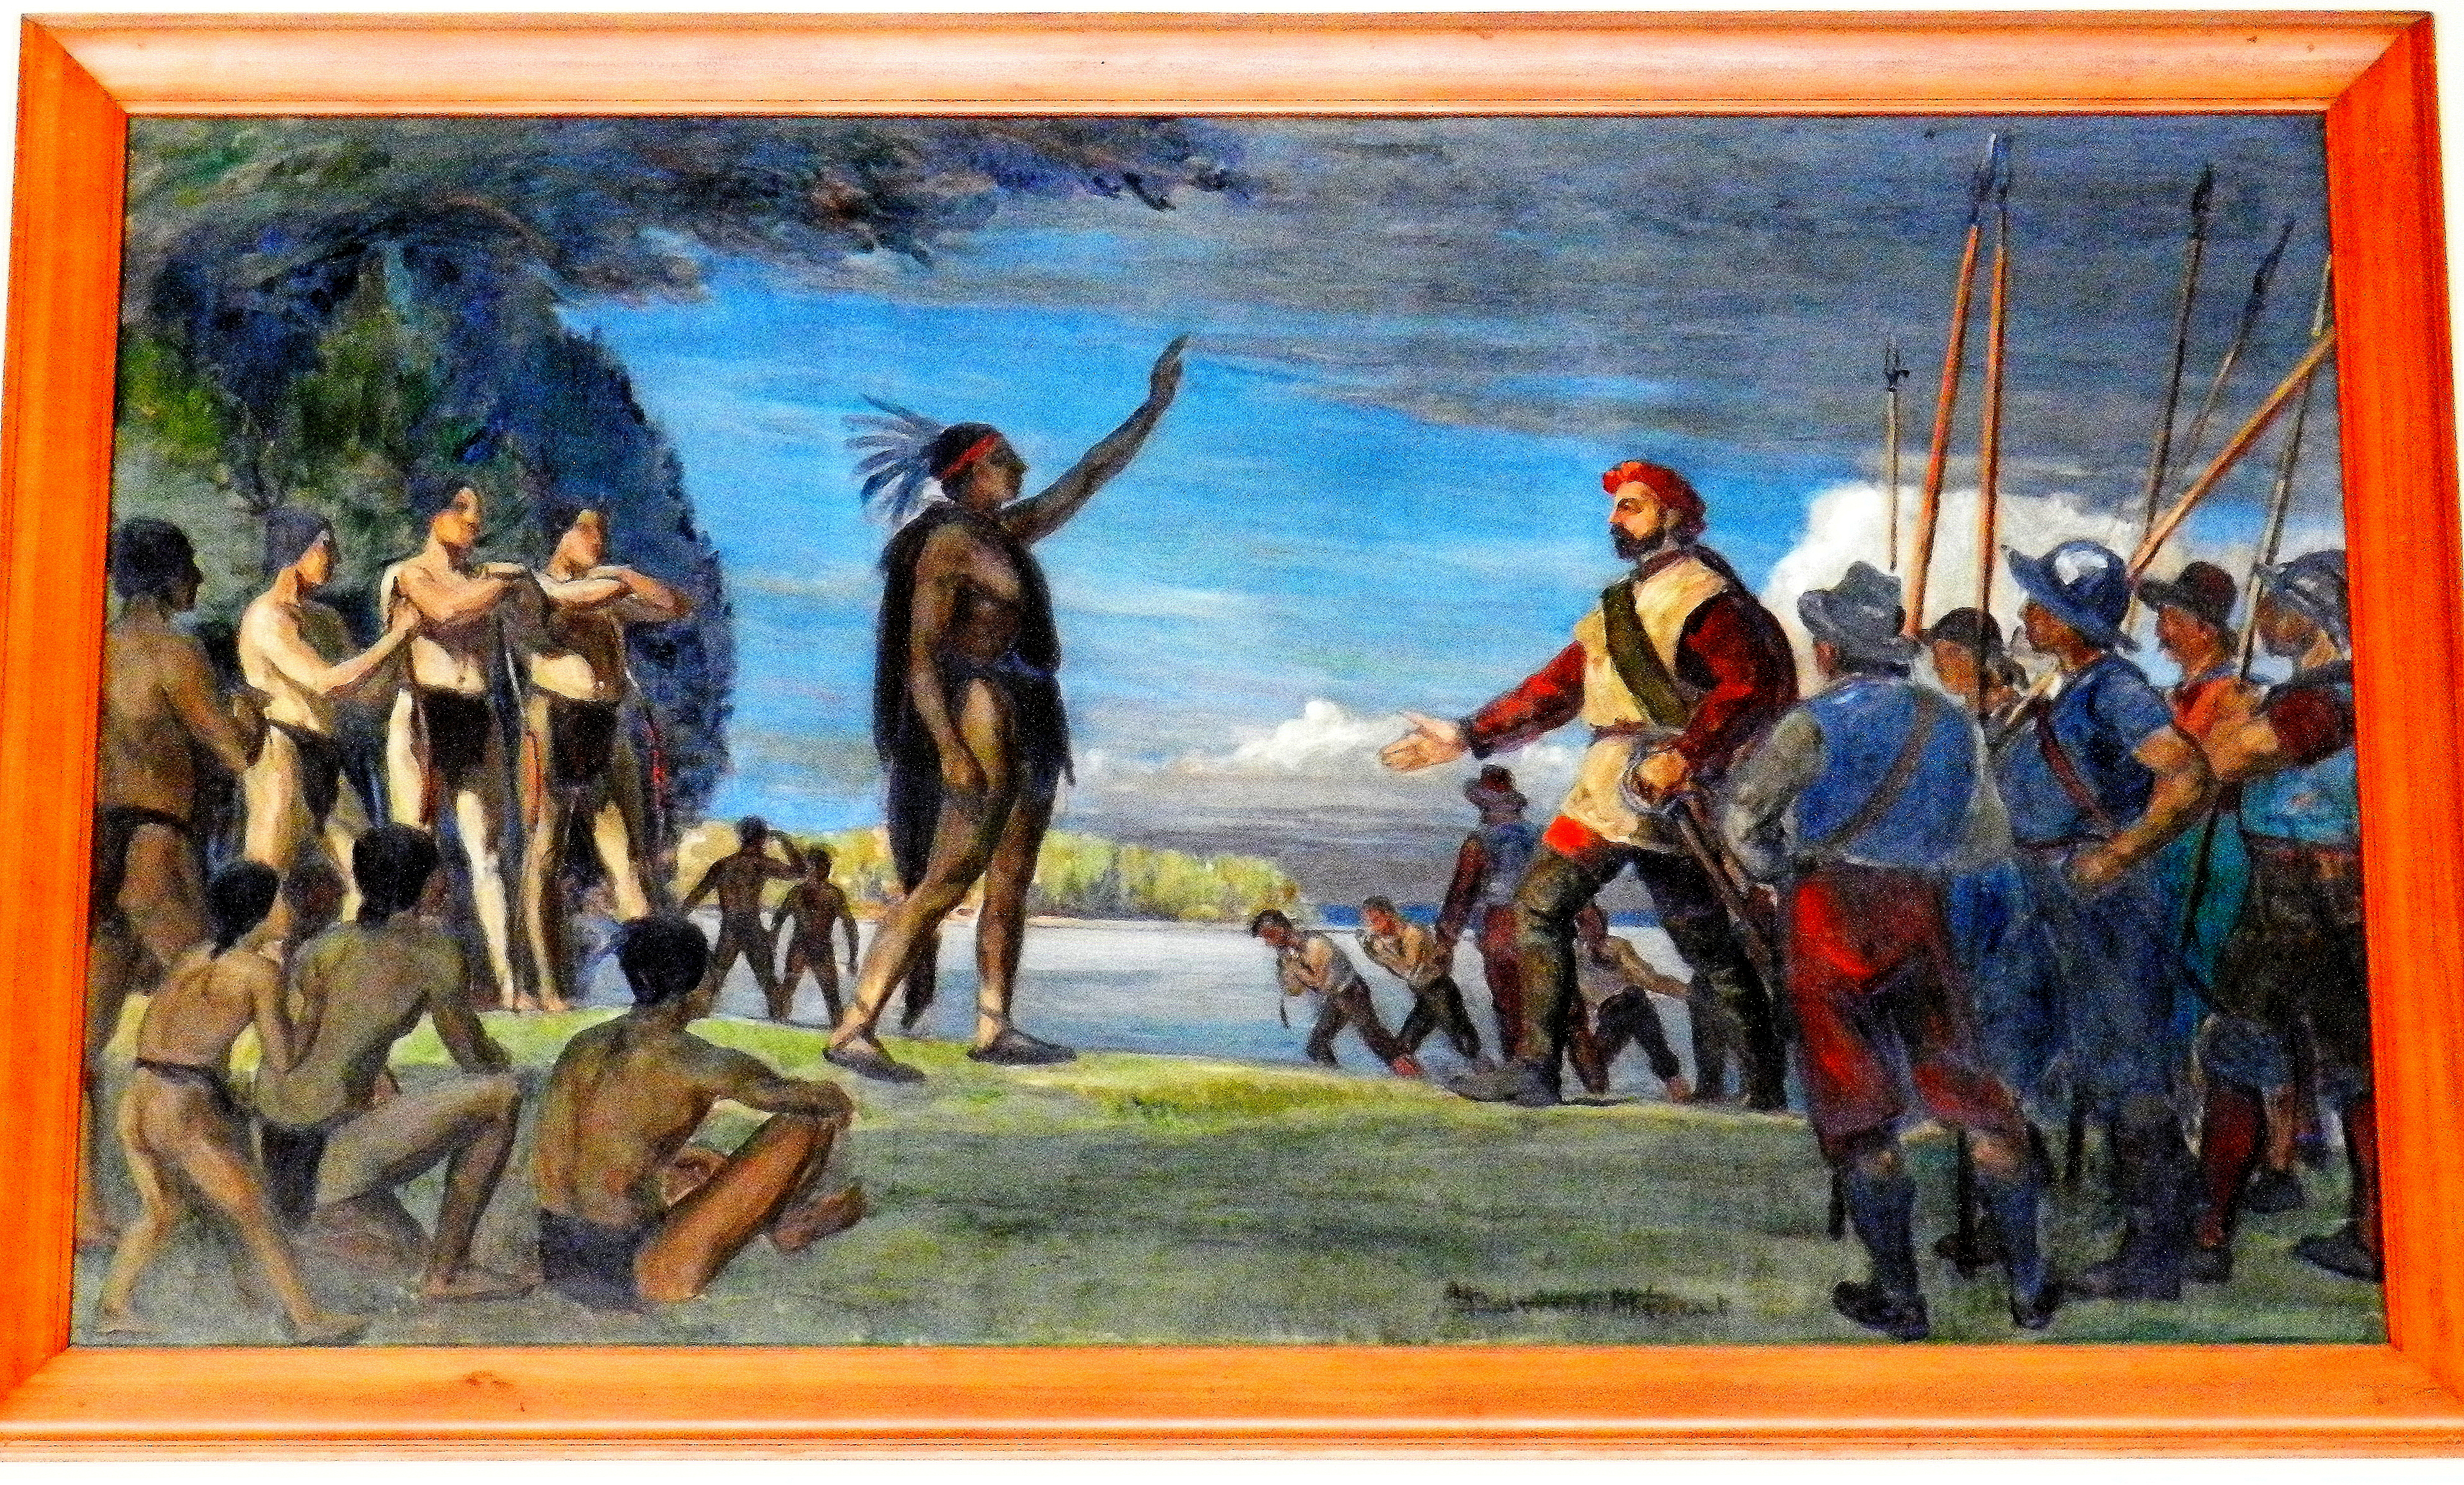 Painting by Adrien Hébert representing Jacques Cartier meeting the Iroquois. The Iroquois chief raises his arm as a sign of welcome, while Cartier responds by raising his own slightly while keeping the other hand on his sword. The painting is currently displayed at Mount Royal Park in Montreal.